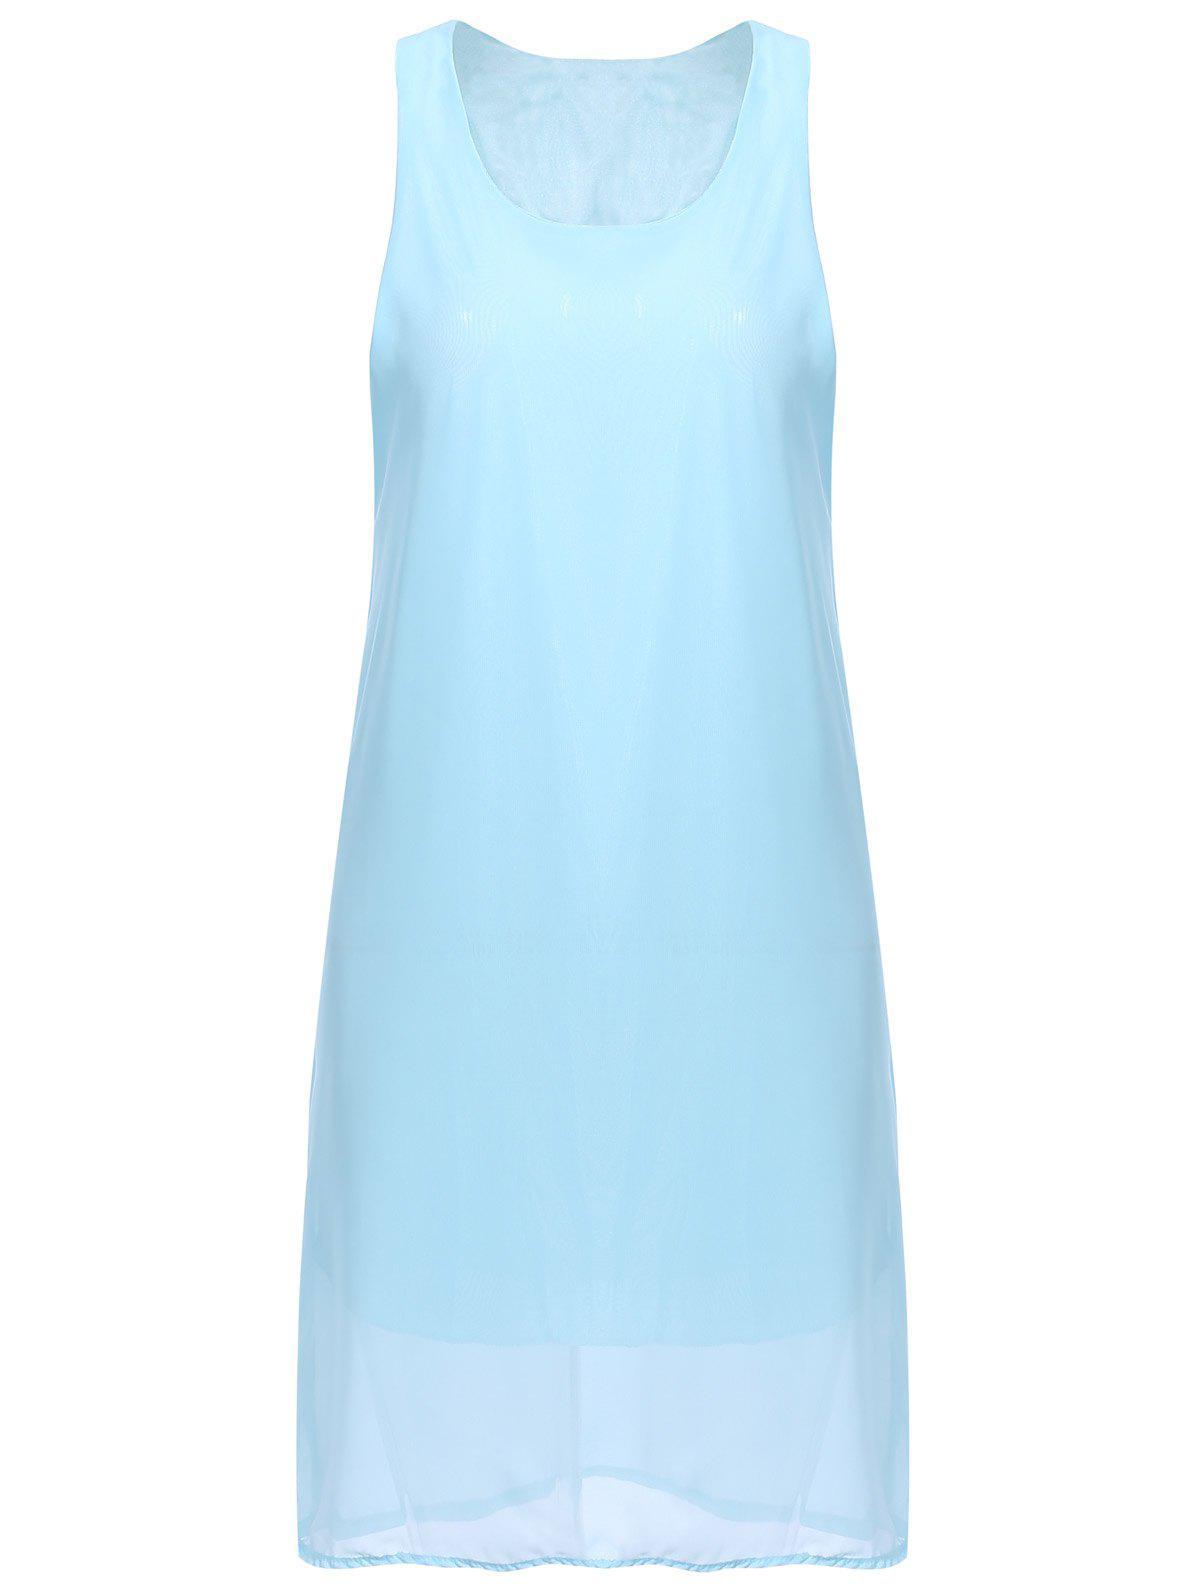 Bowknot Chiffon Mini Tank Dress - AZURE M